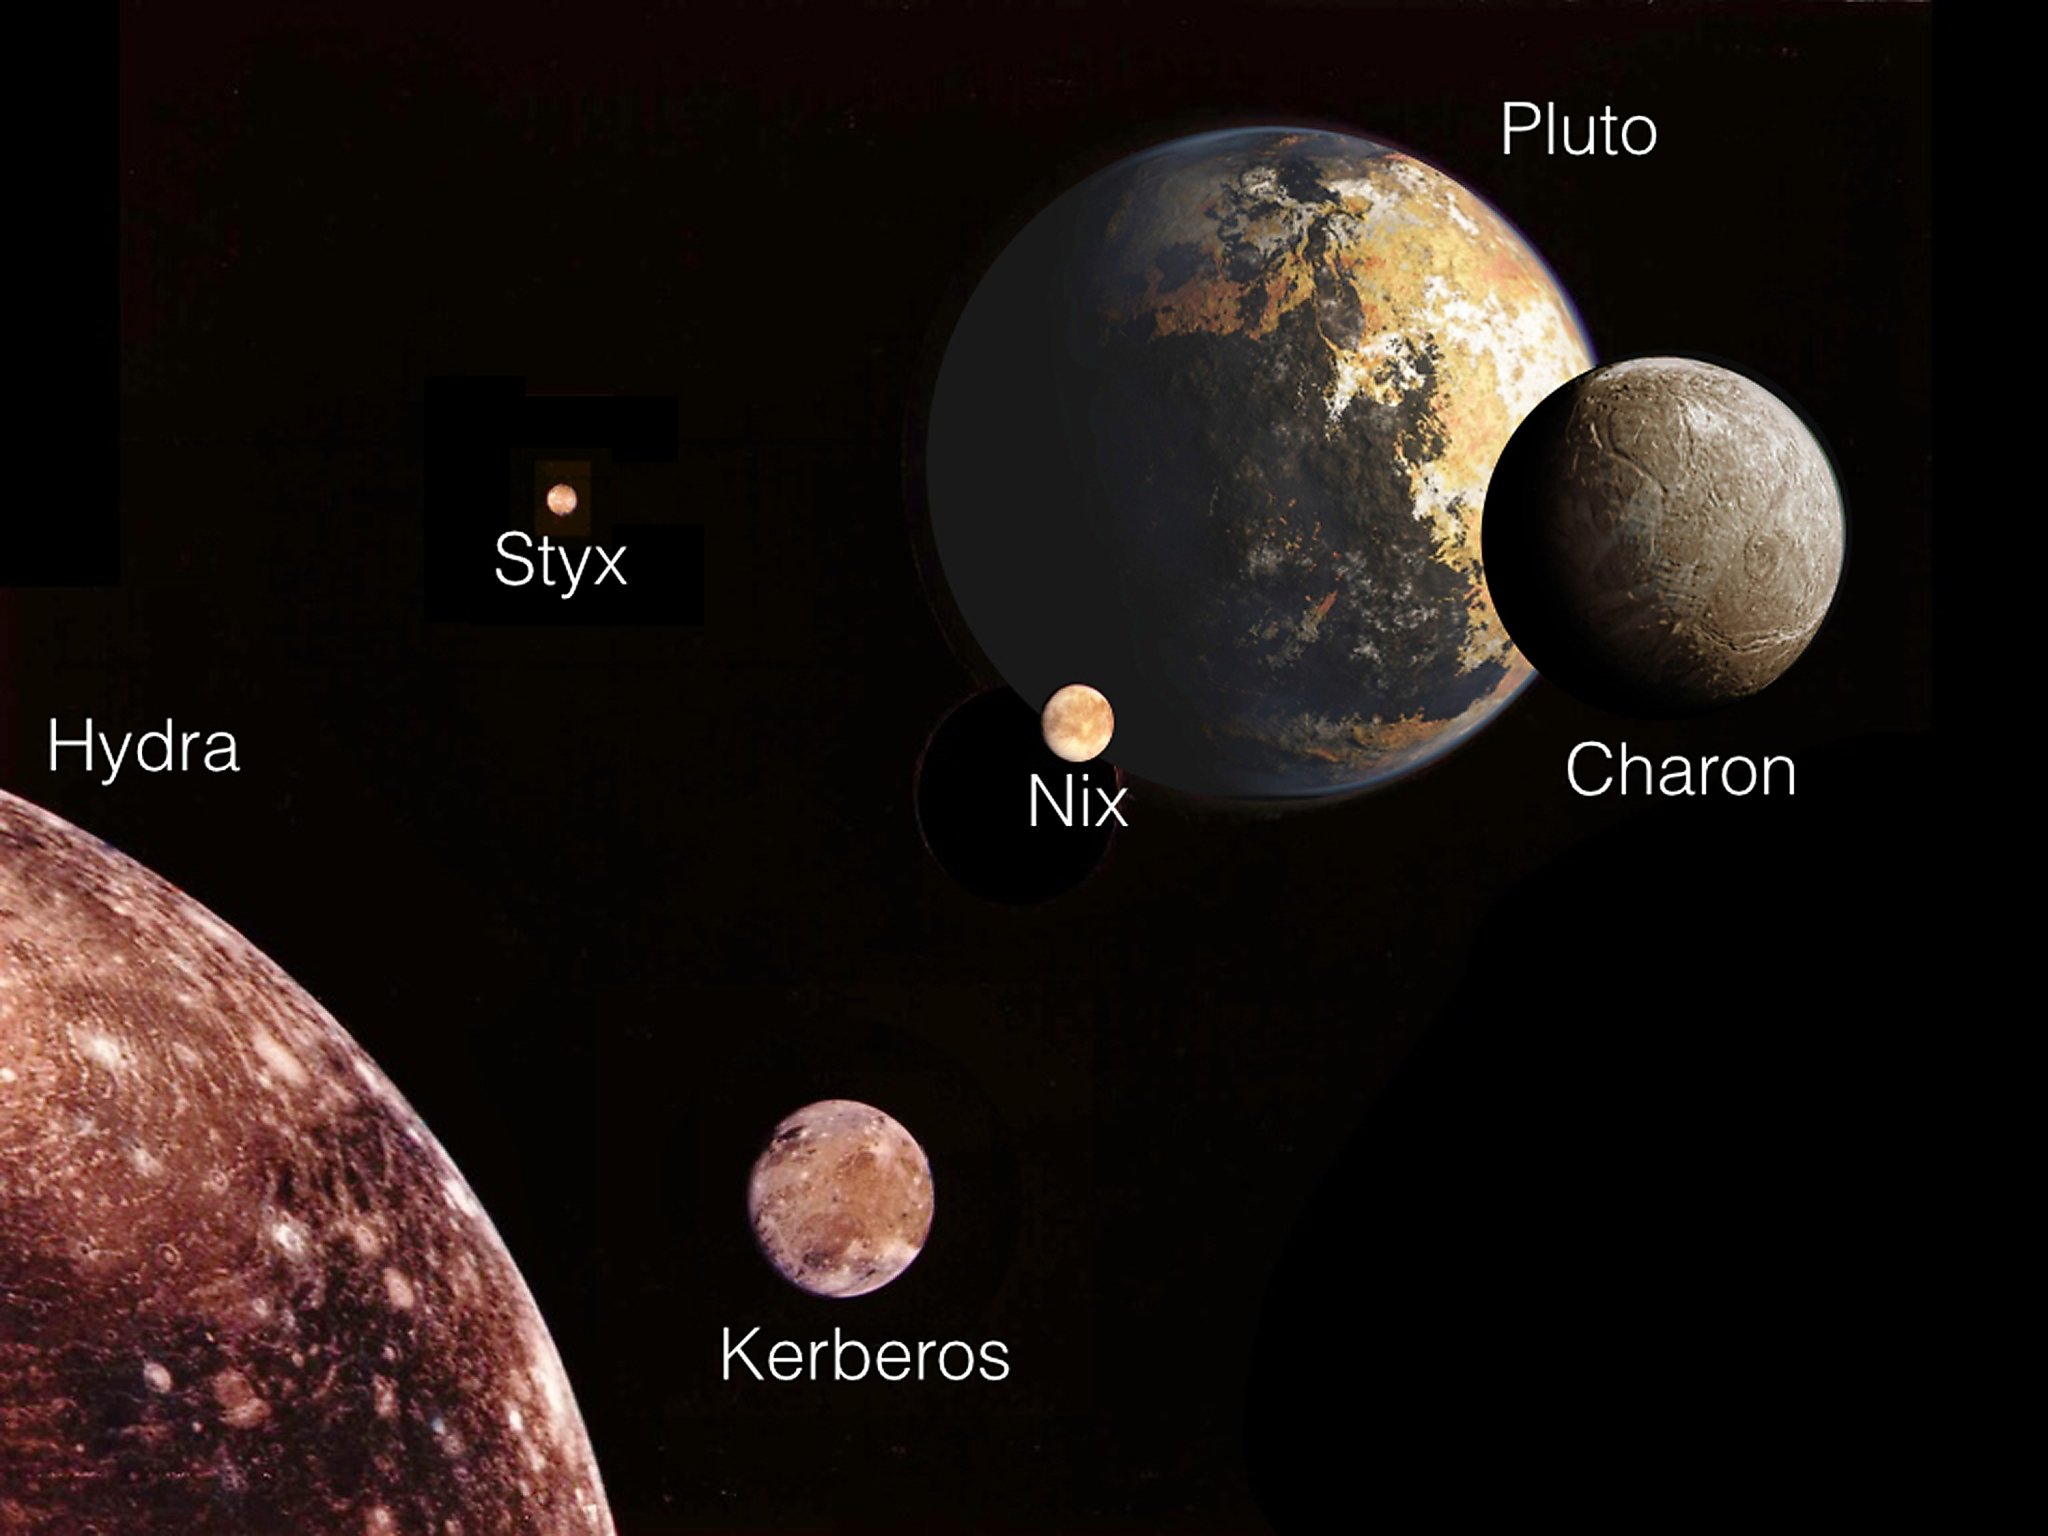 pluto's moons pictures - HD1200×900